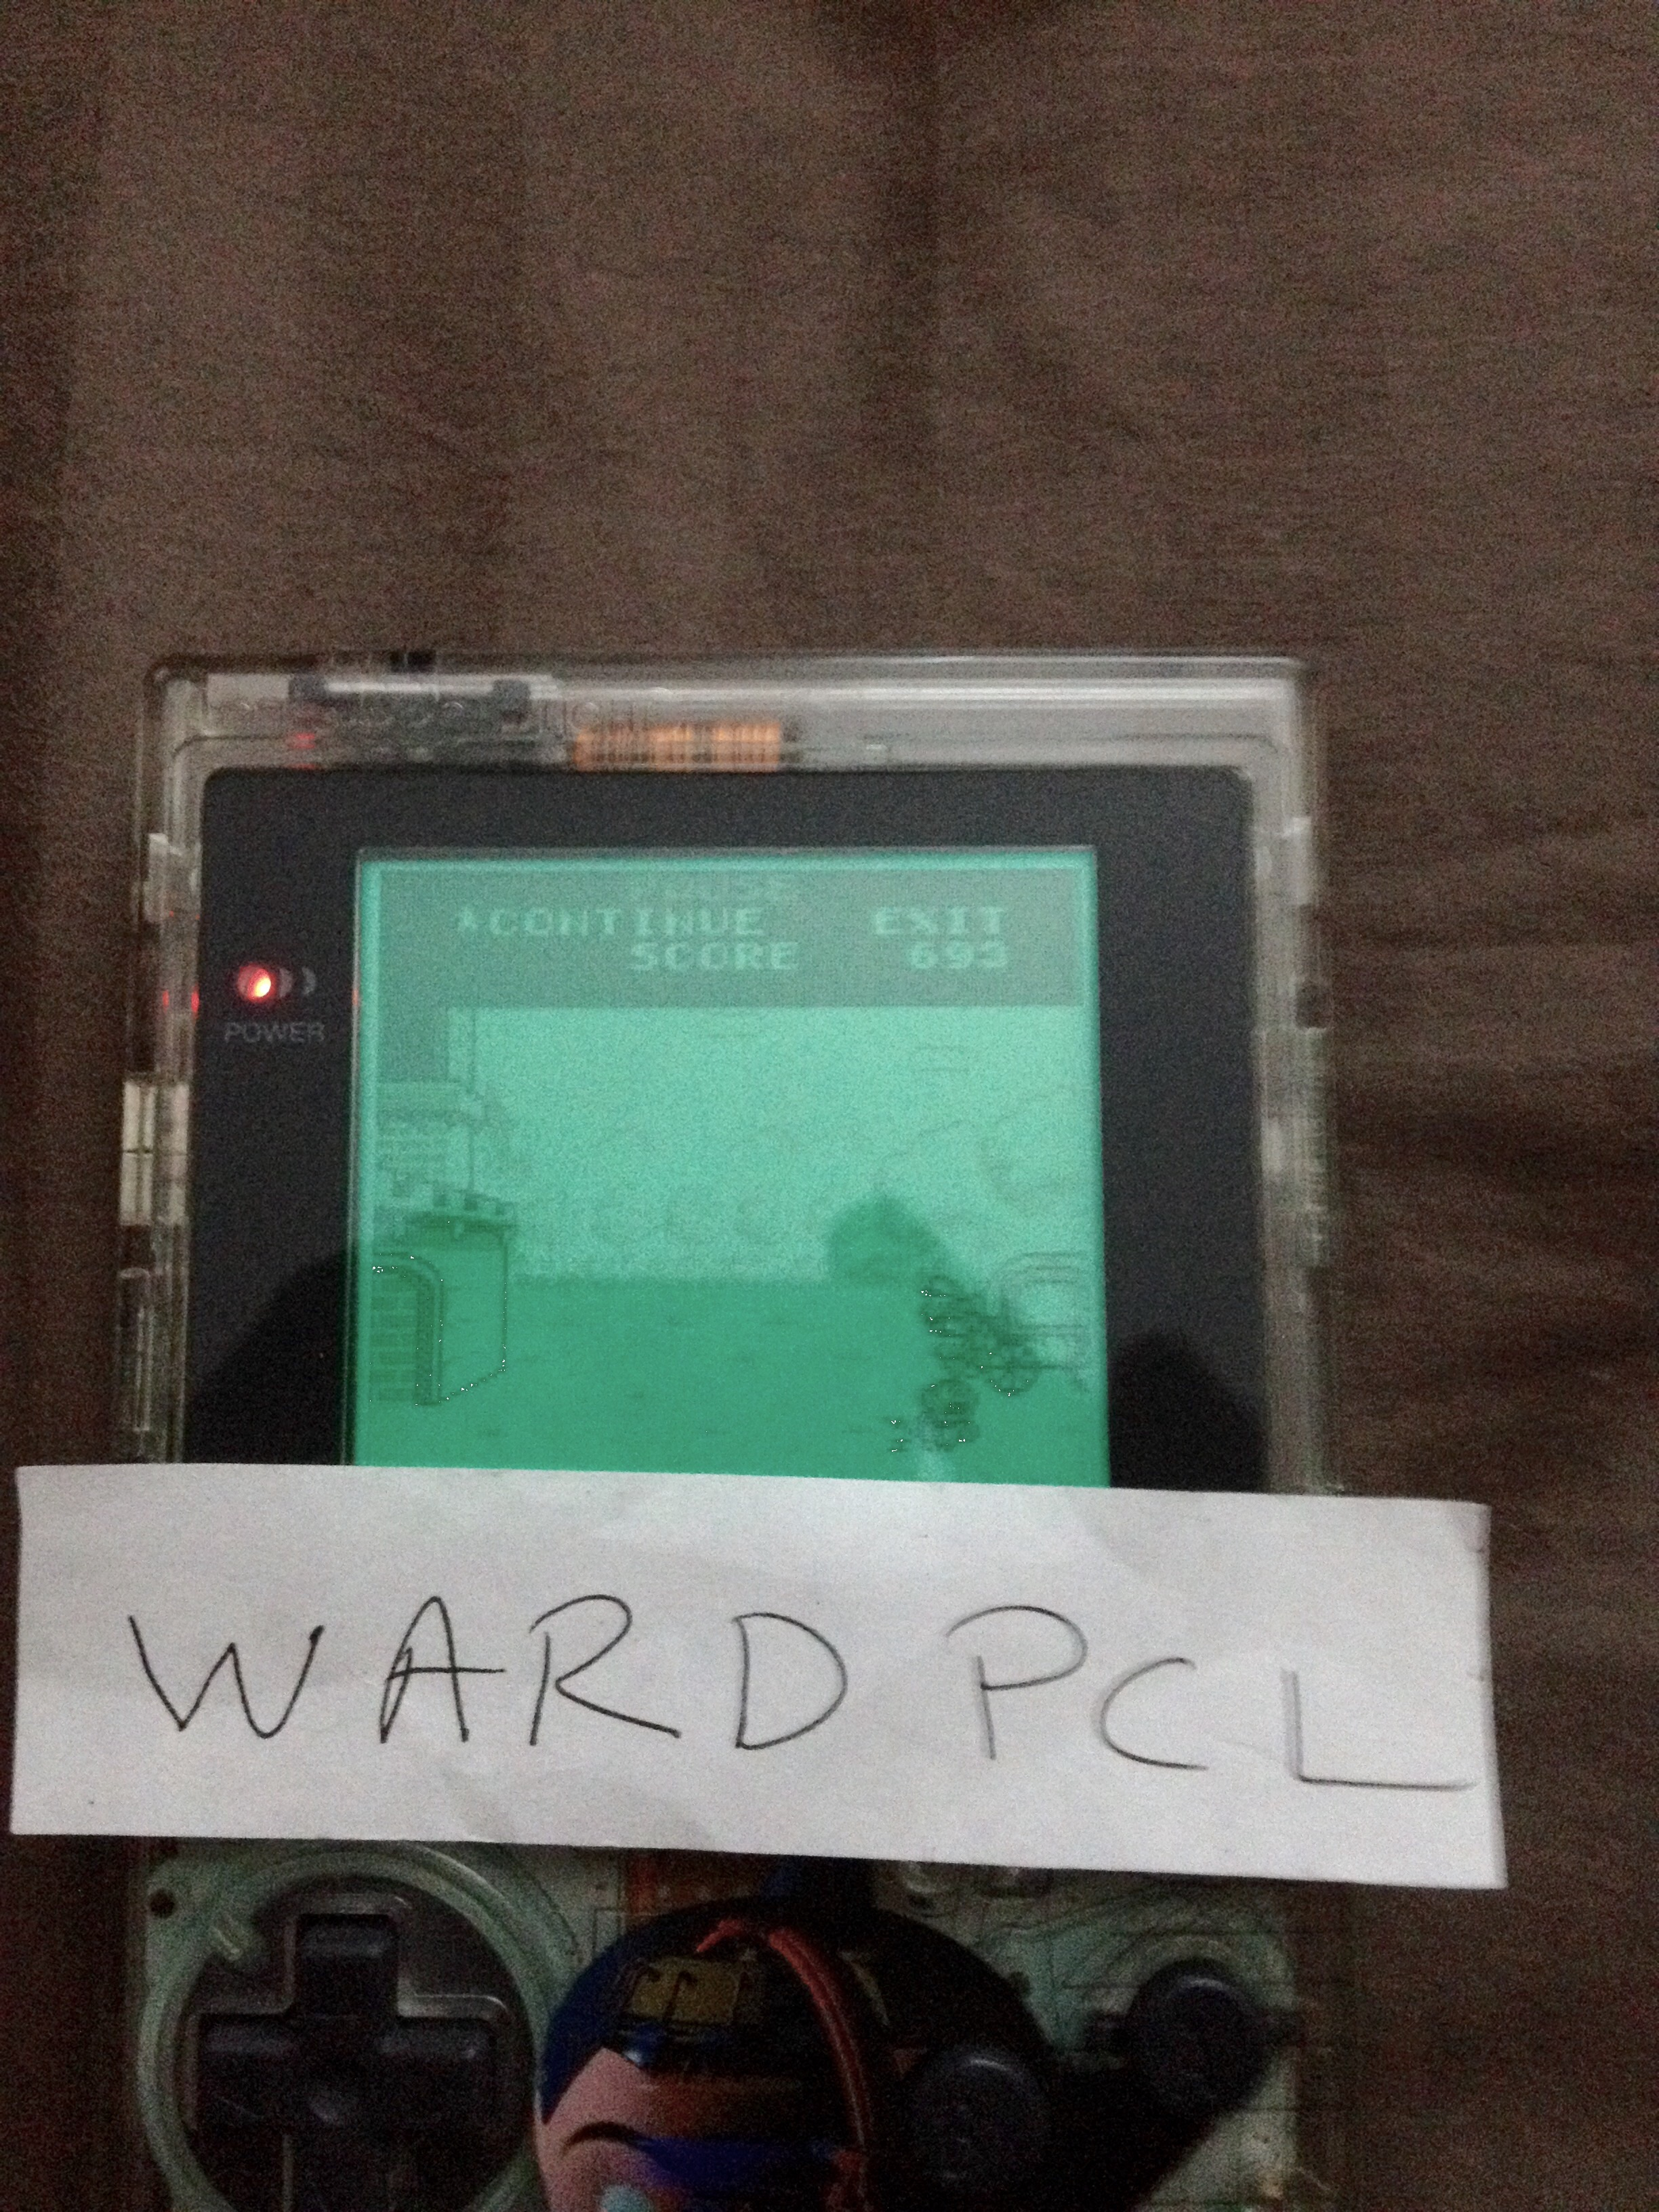 Wardpcl: Game & Watch Gallery: Fire [Modern: Easy] (Game Boy) 693 points on 2015-07-05 07:40:34